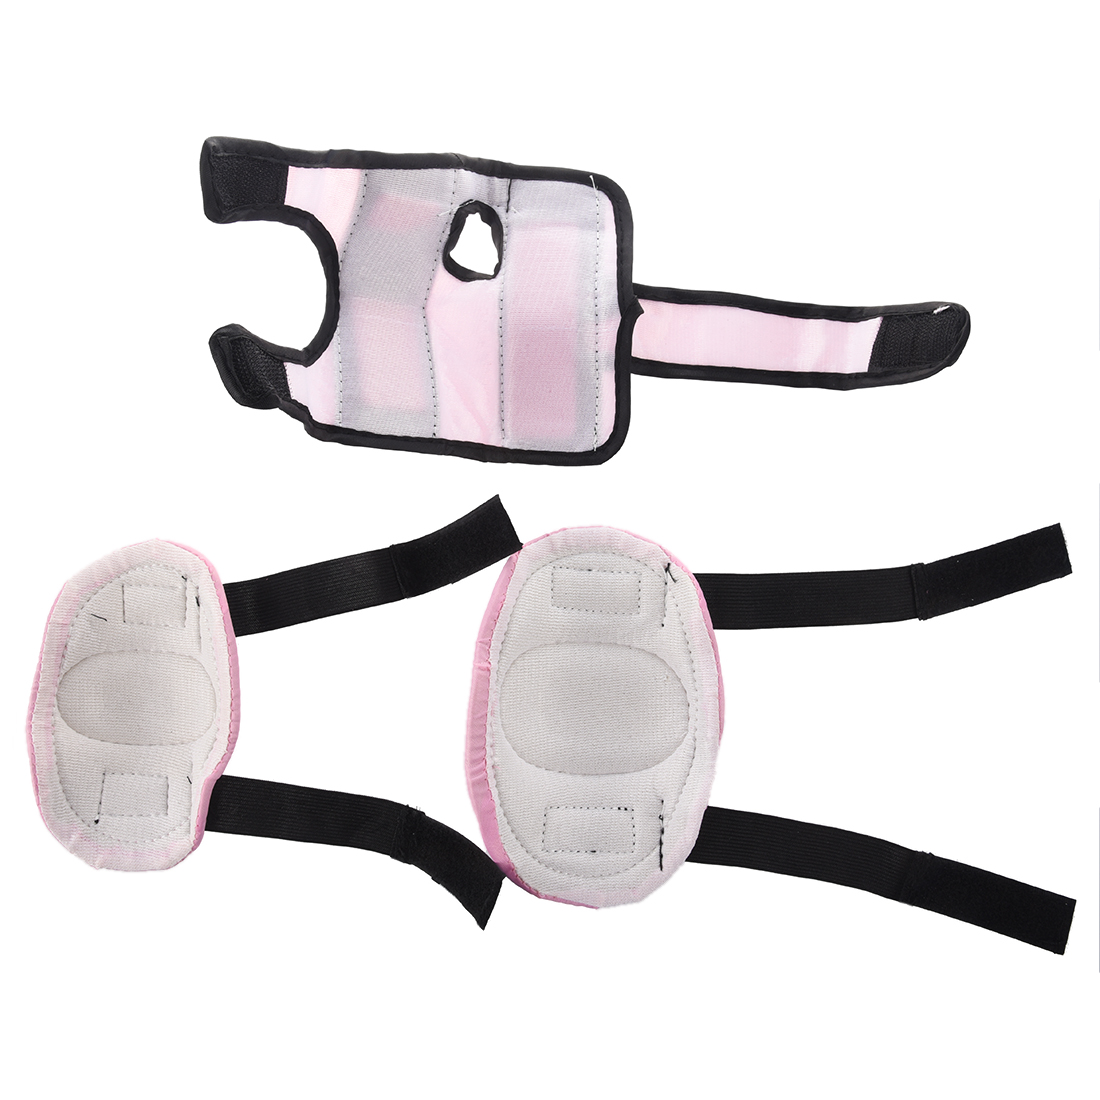 Boys Girls Childs Children Skate Cycle Knee Set Elbow Wrist Safety Pads Kids